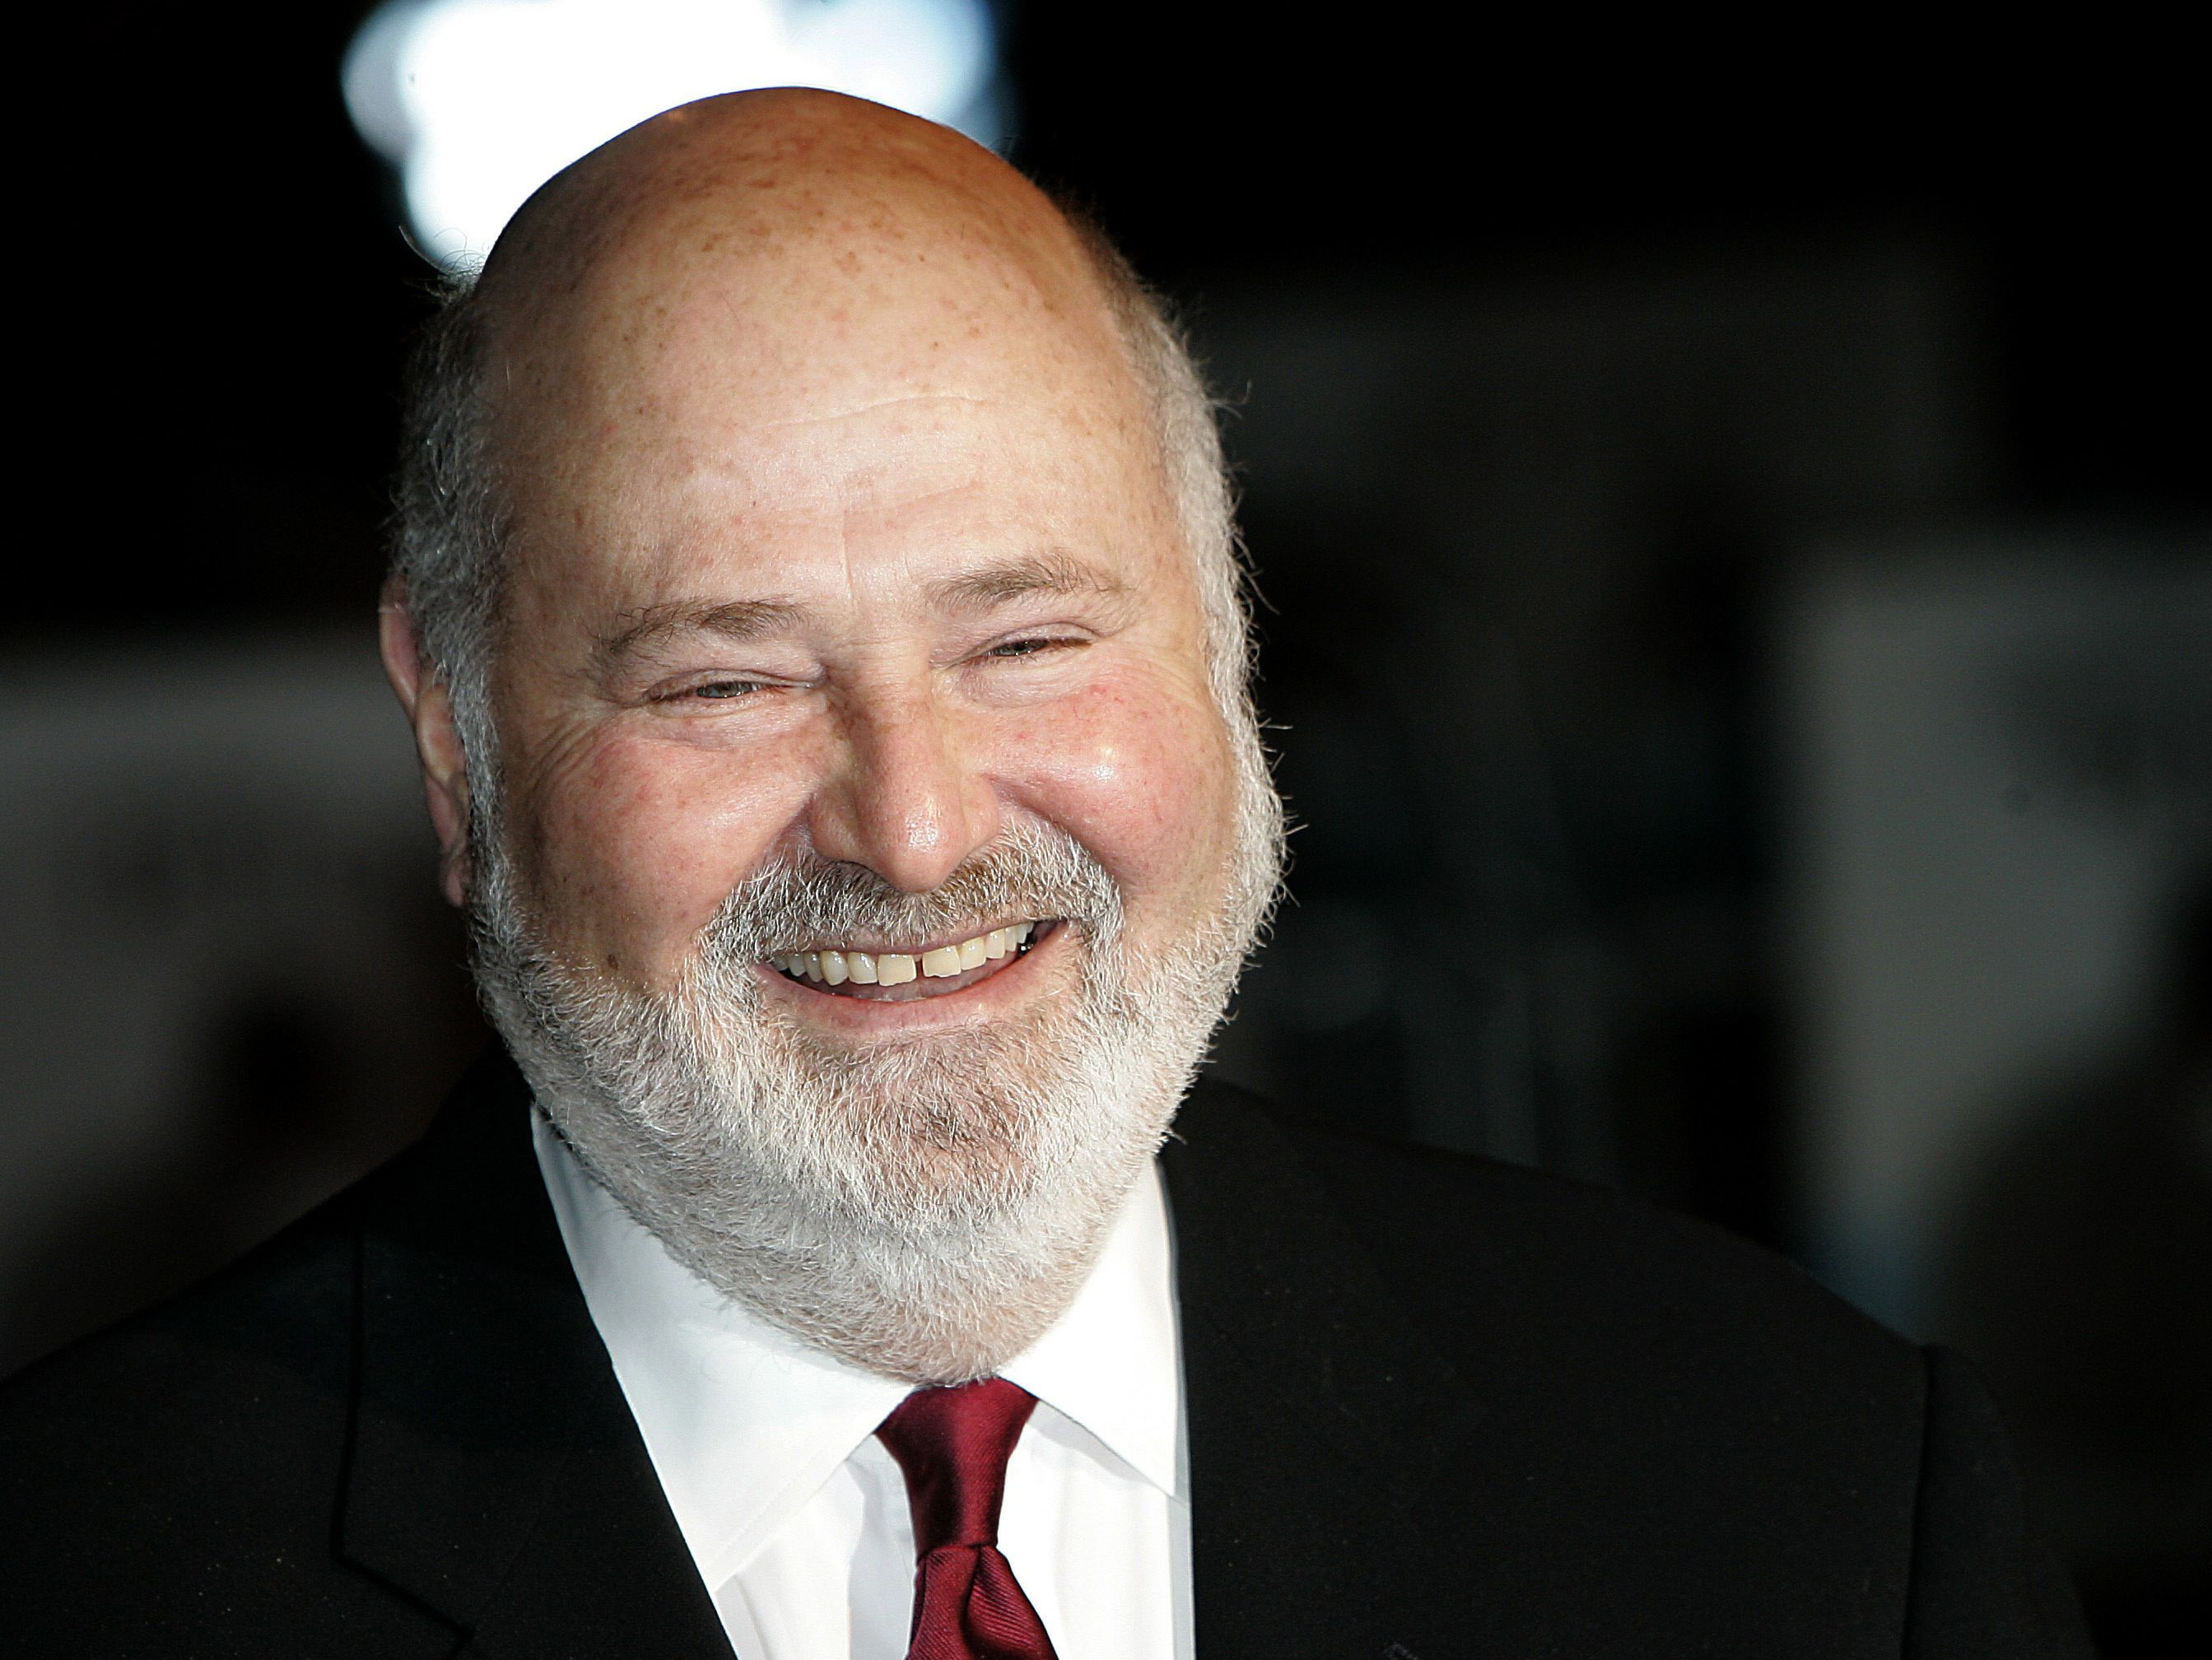 rob reiner on the catharsis of making a film about son s drug abuse